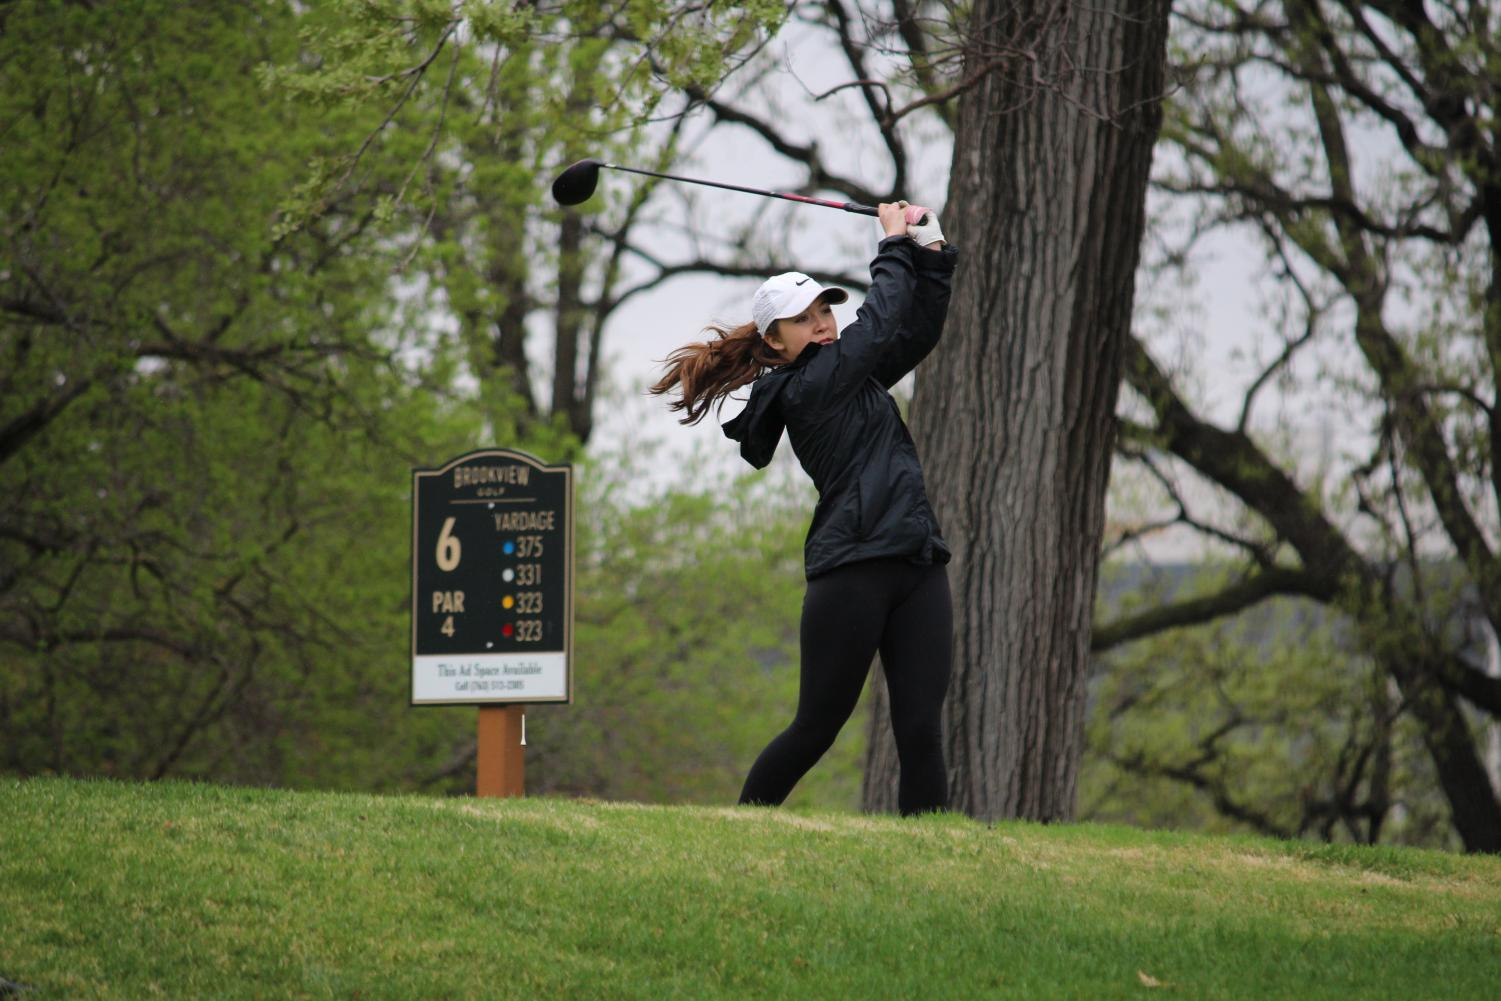 Sophomore Maia Seidel hits an approach shot during a match on May 9 at Brookview Golf Course. The girls' golf 2019 season will hold their first practice March 18.